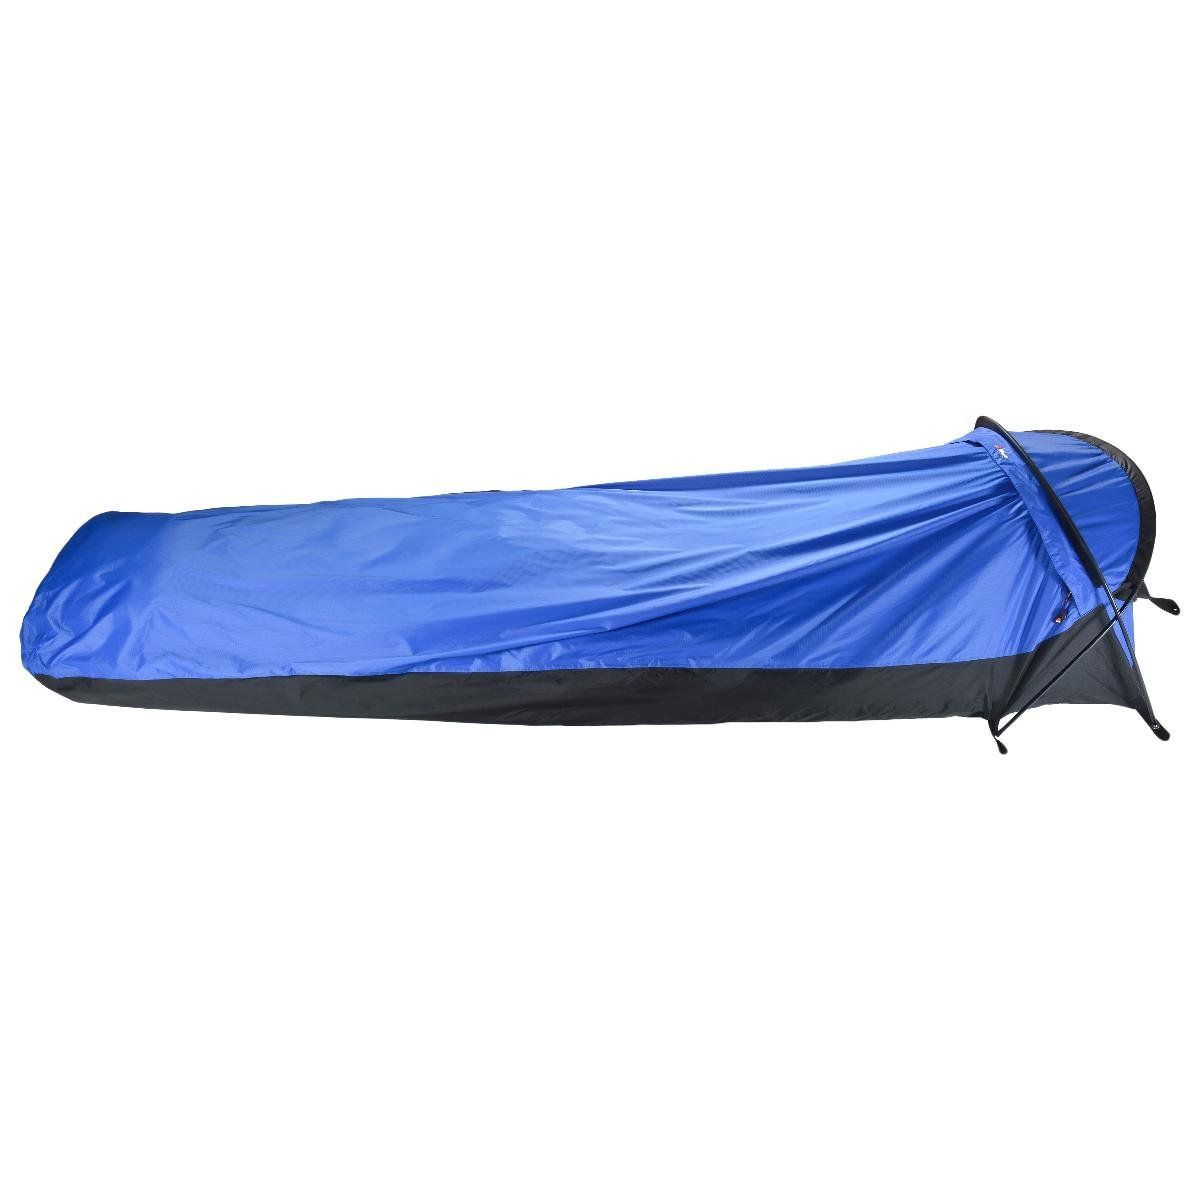 Chinook Summit Bivy Bag * New and awesome outdoor gear awaits you Read it now  sc 1 st  Pinterest & Chinook Summit Bivy Bag * New and awesome outdoor gear awaits you ...